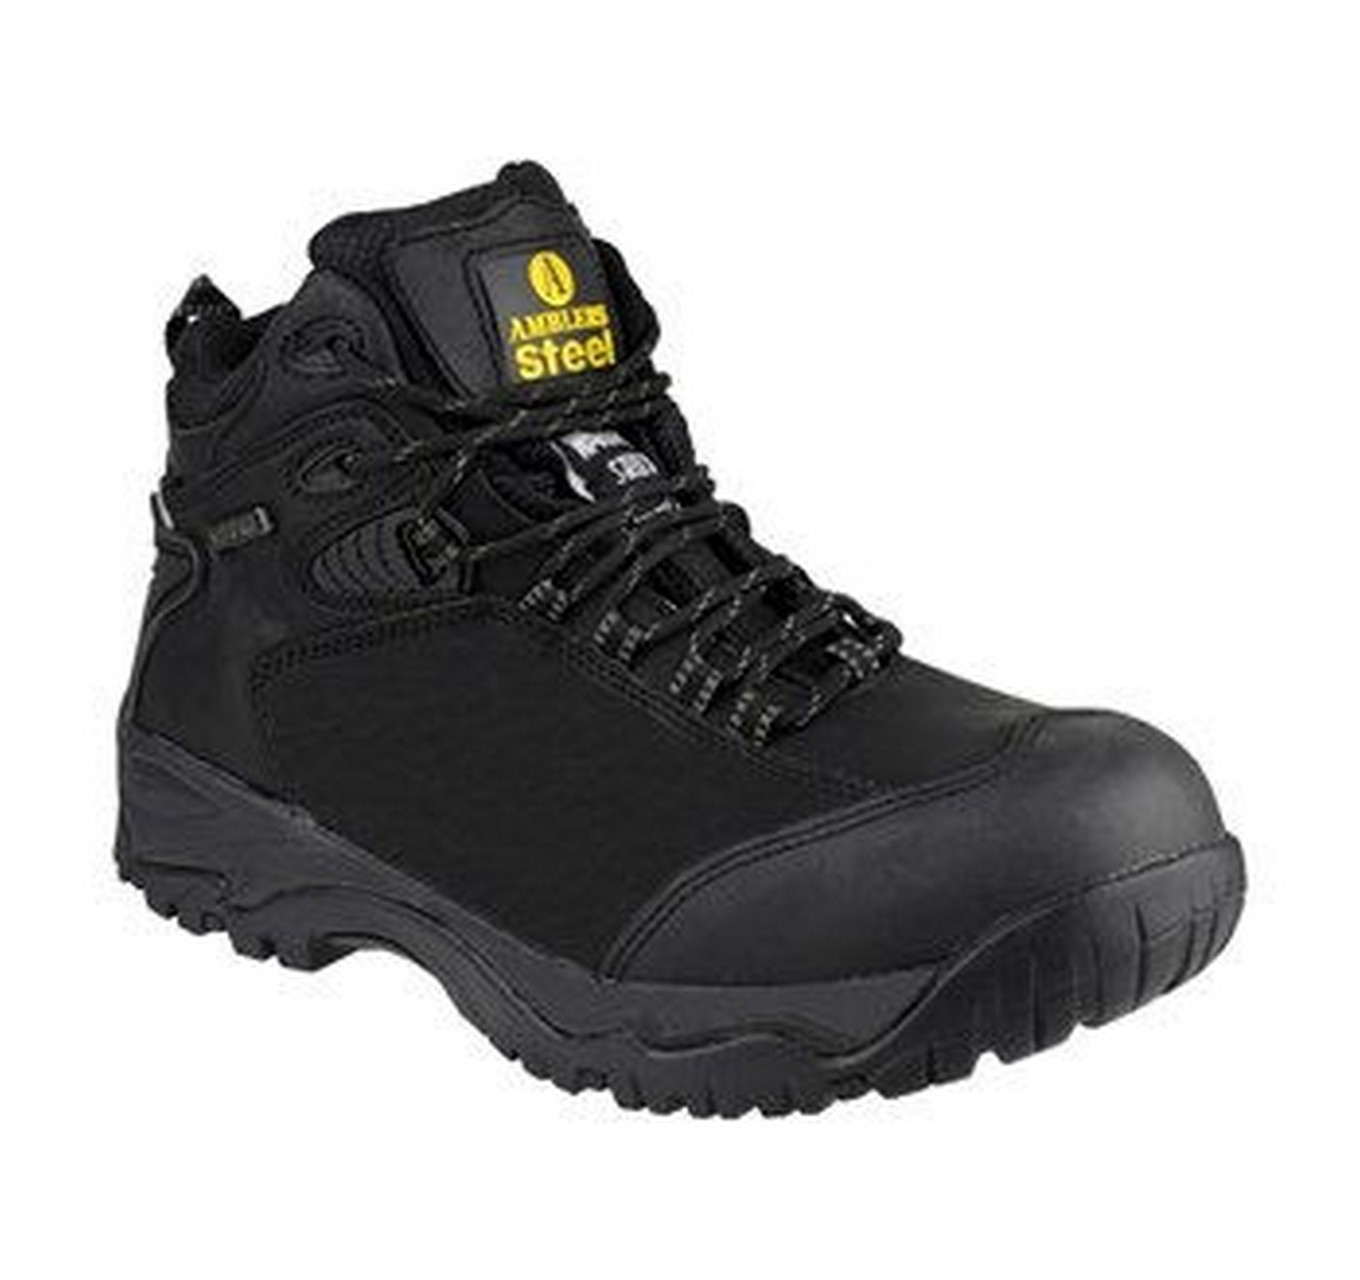 Safety Boot Fs190 Black 11